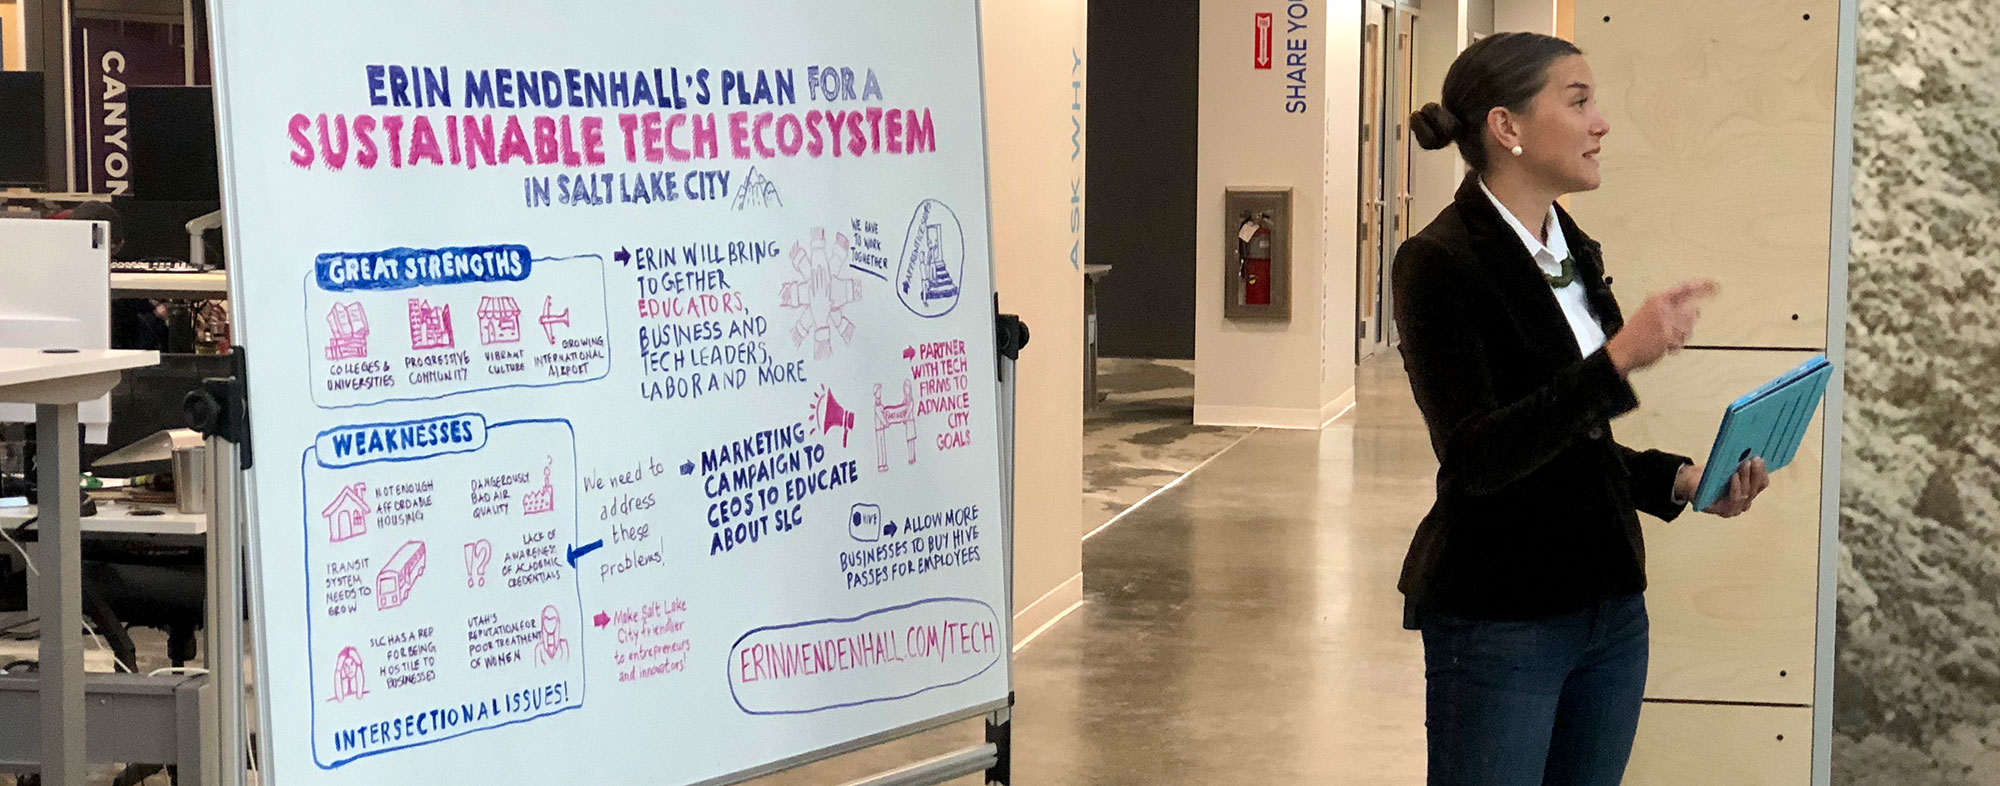 Photo of Erin Mendenhall in front of a white board with an illustration of her tech ecosystem plan